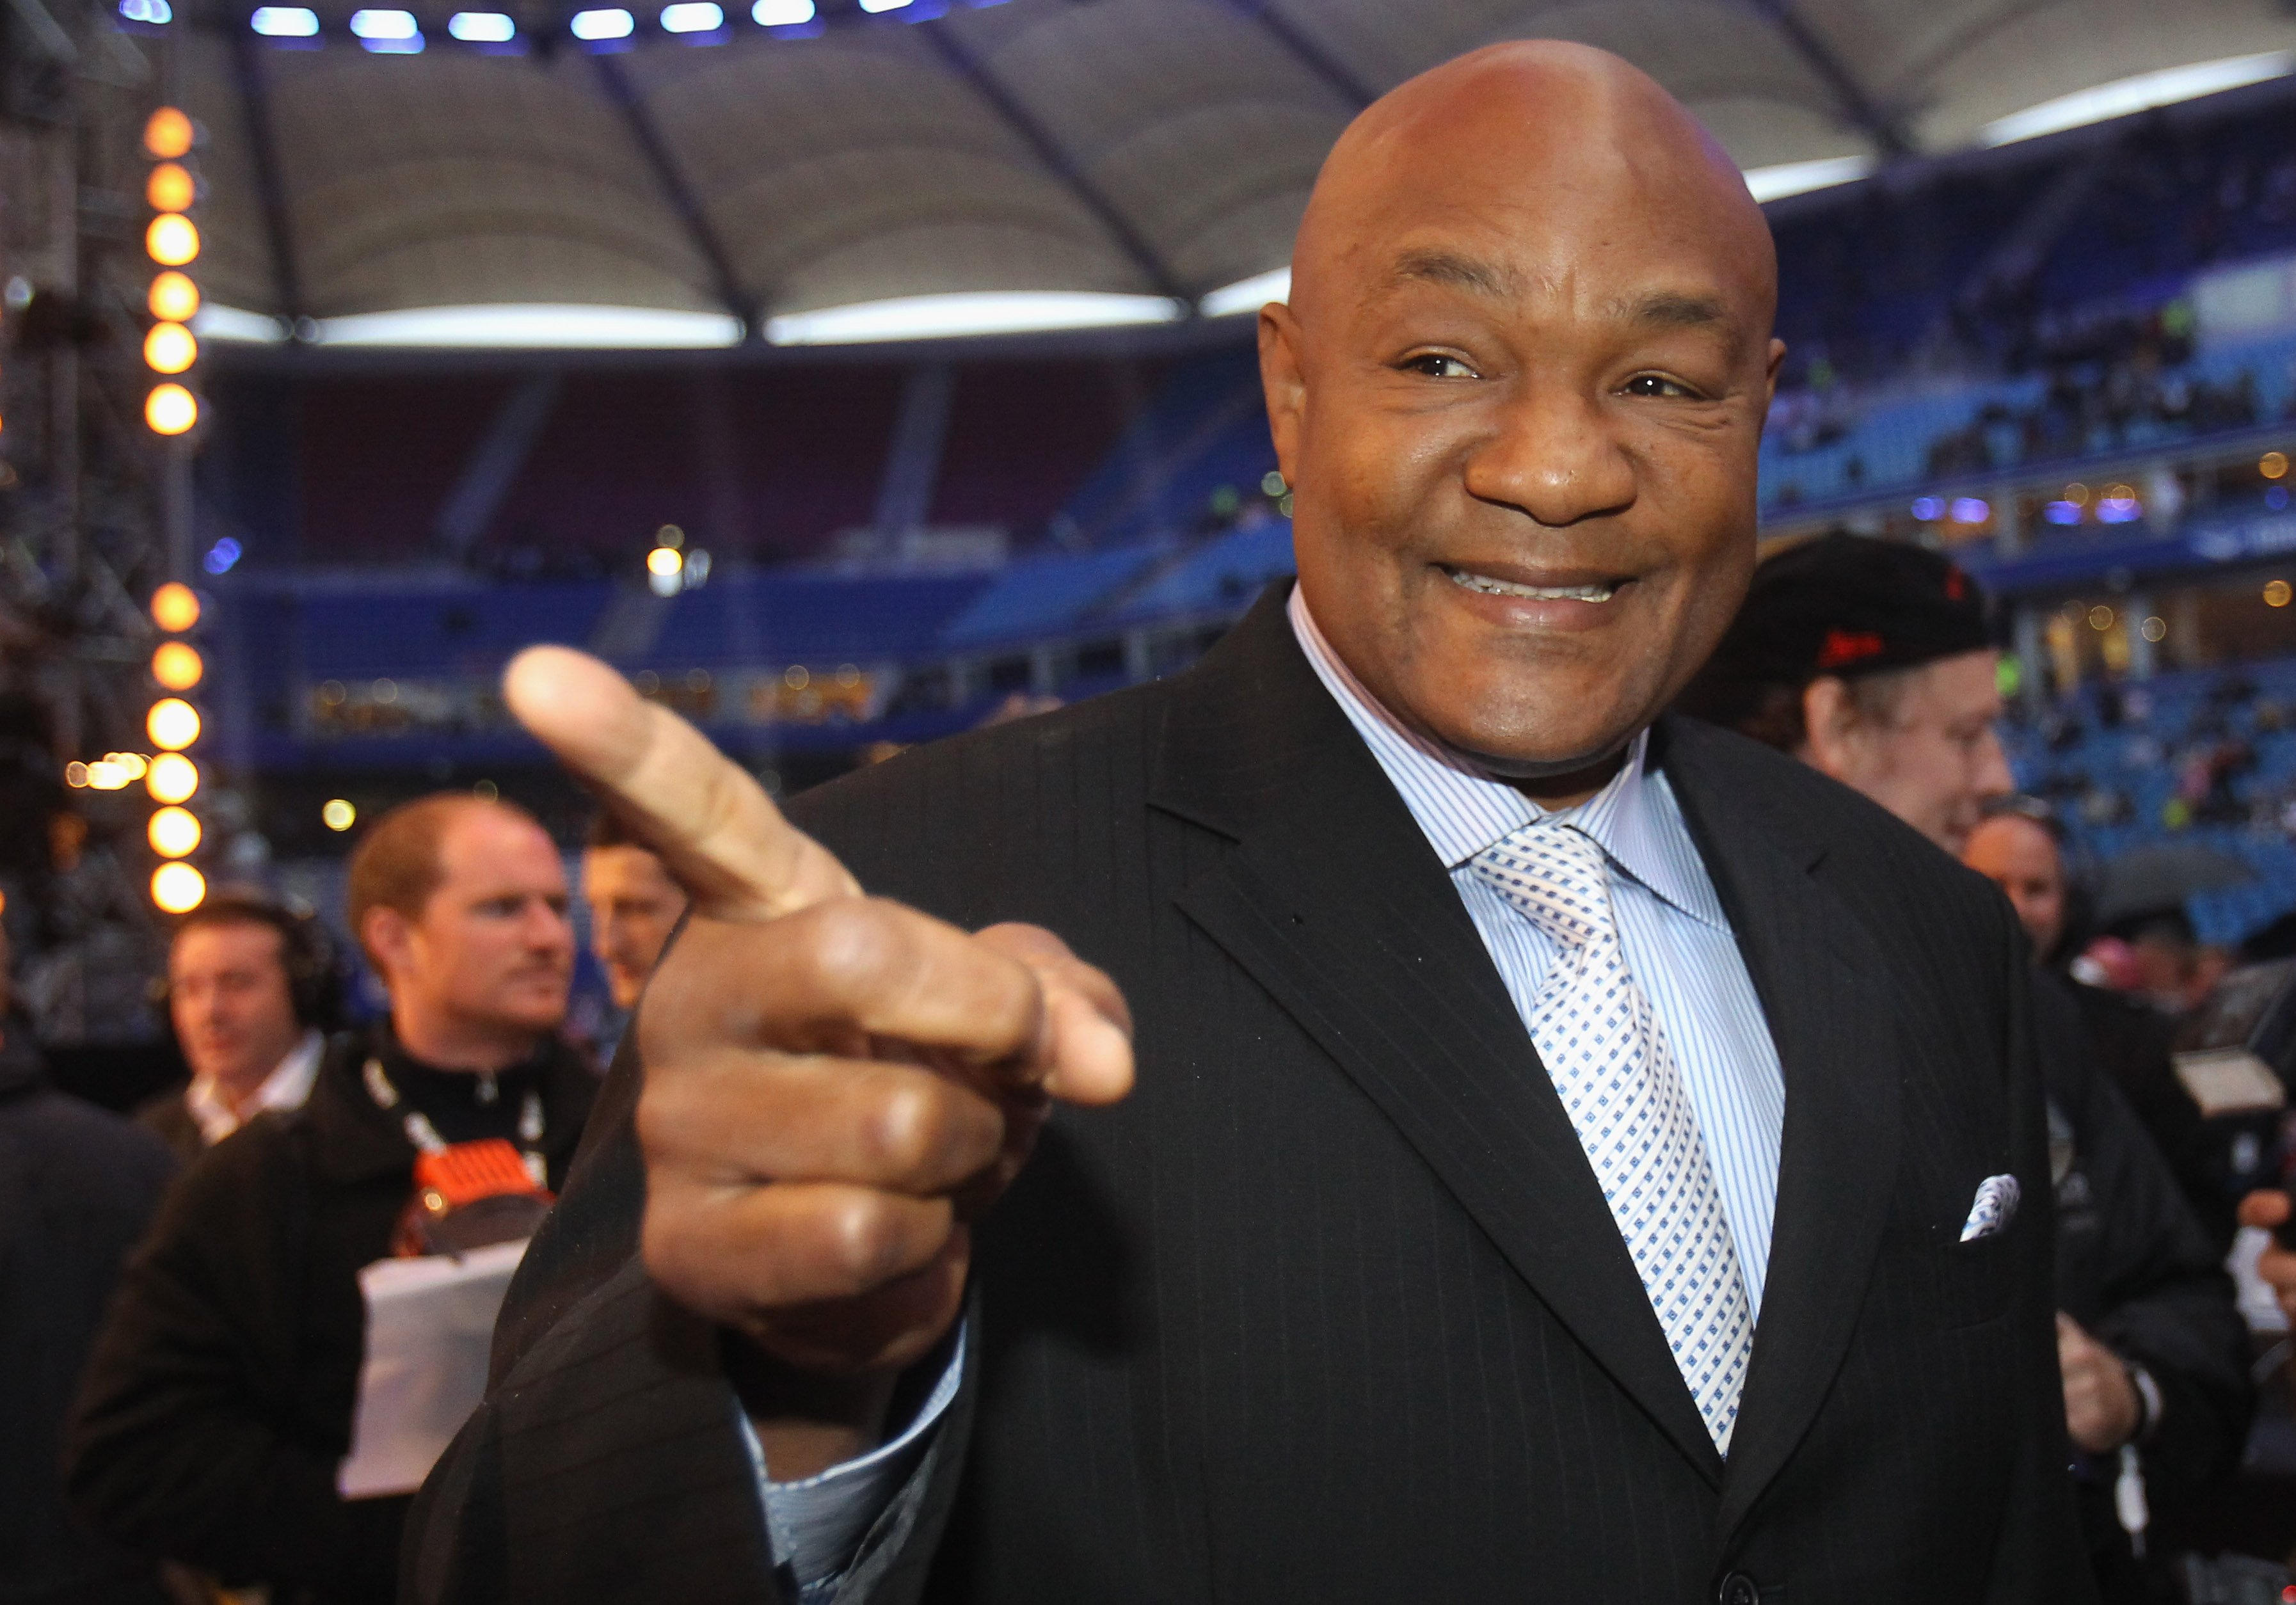 George Foreman at the WBC Heavyweight World Championship match on July 2, 2011 in Hamburg, Germany. | Photo: Getty Images